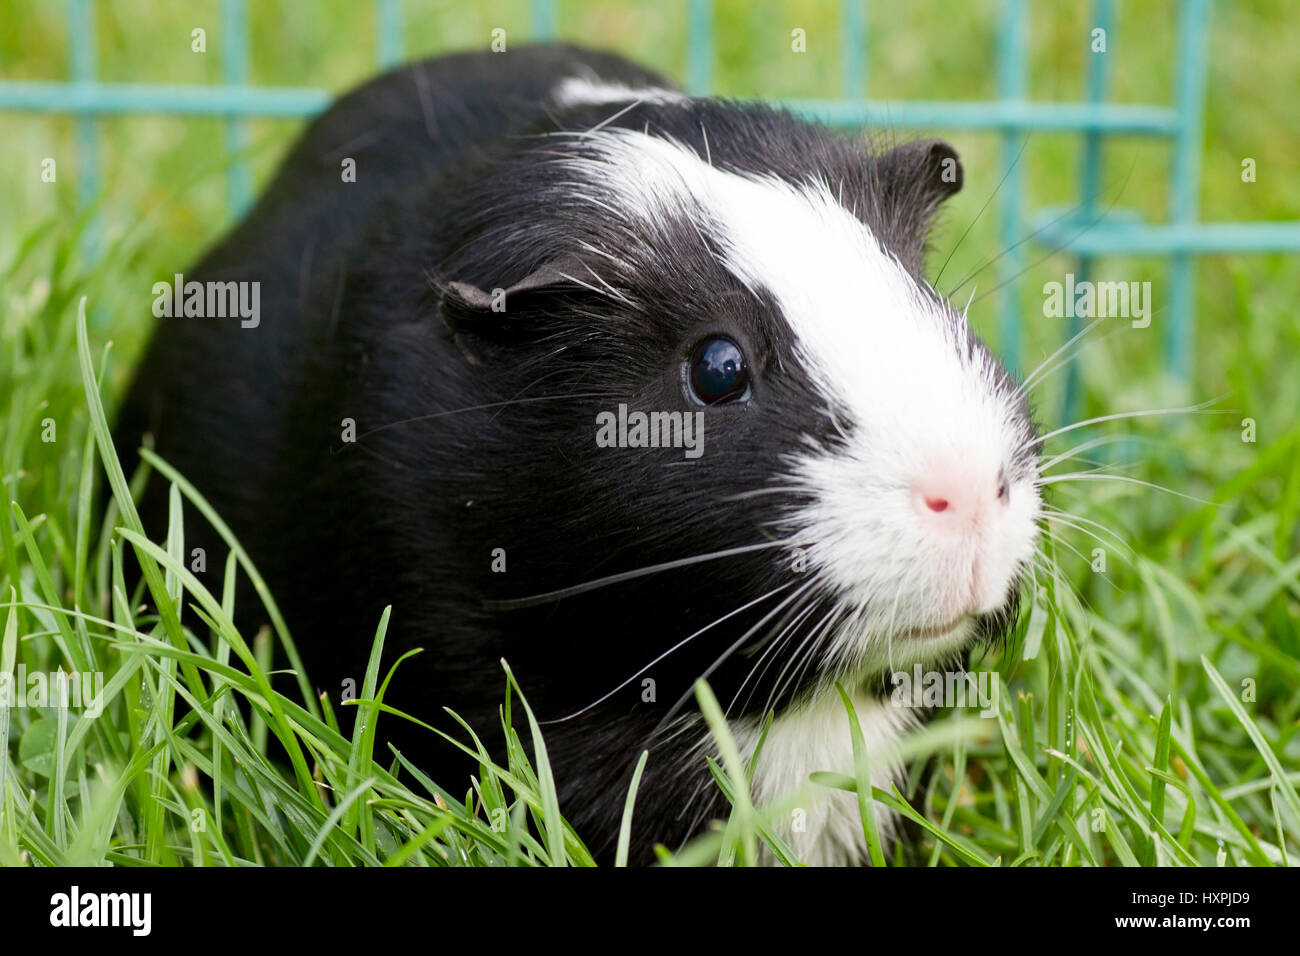 Glatthaar Guinea Pigs Smooth Hair Black And White Meerschweinchen Glatthaar